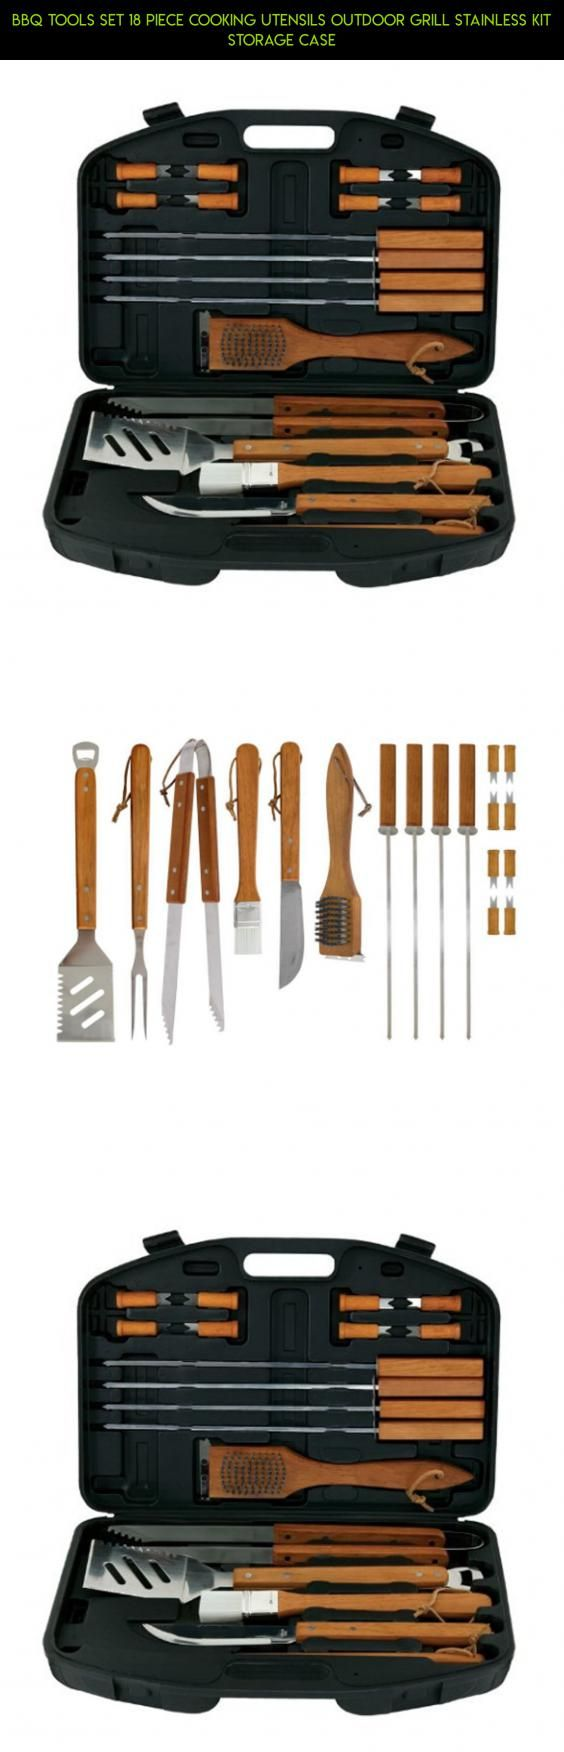 BBQ Tools Set 18 Piece Cooking Utensils Outdoor Grill Stainless Kit Storage Case #tech #outdoor #plans #drone #camera #storage #cooking #technology #gadgets #shopping #utensils #racing #fpv #parts #kit #products